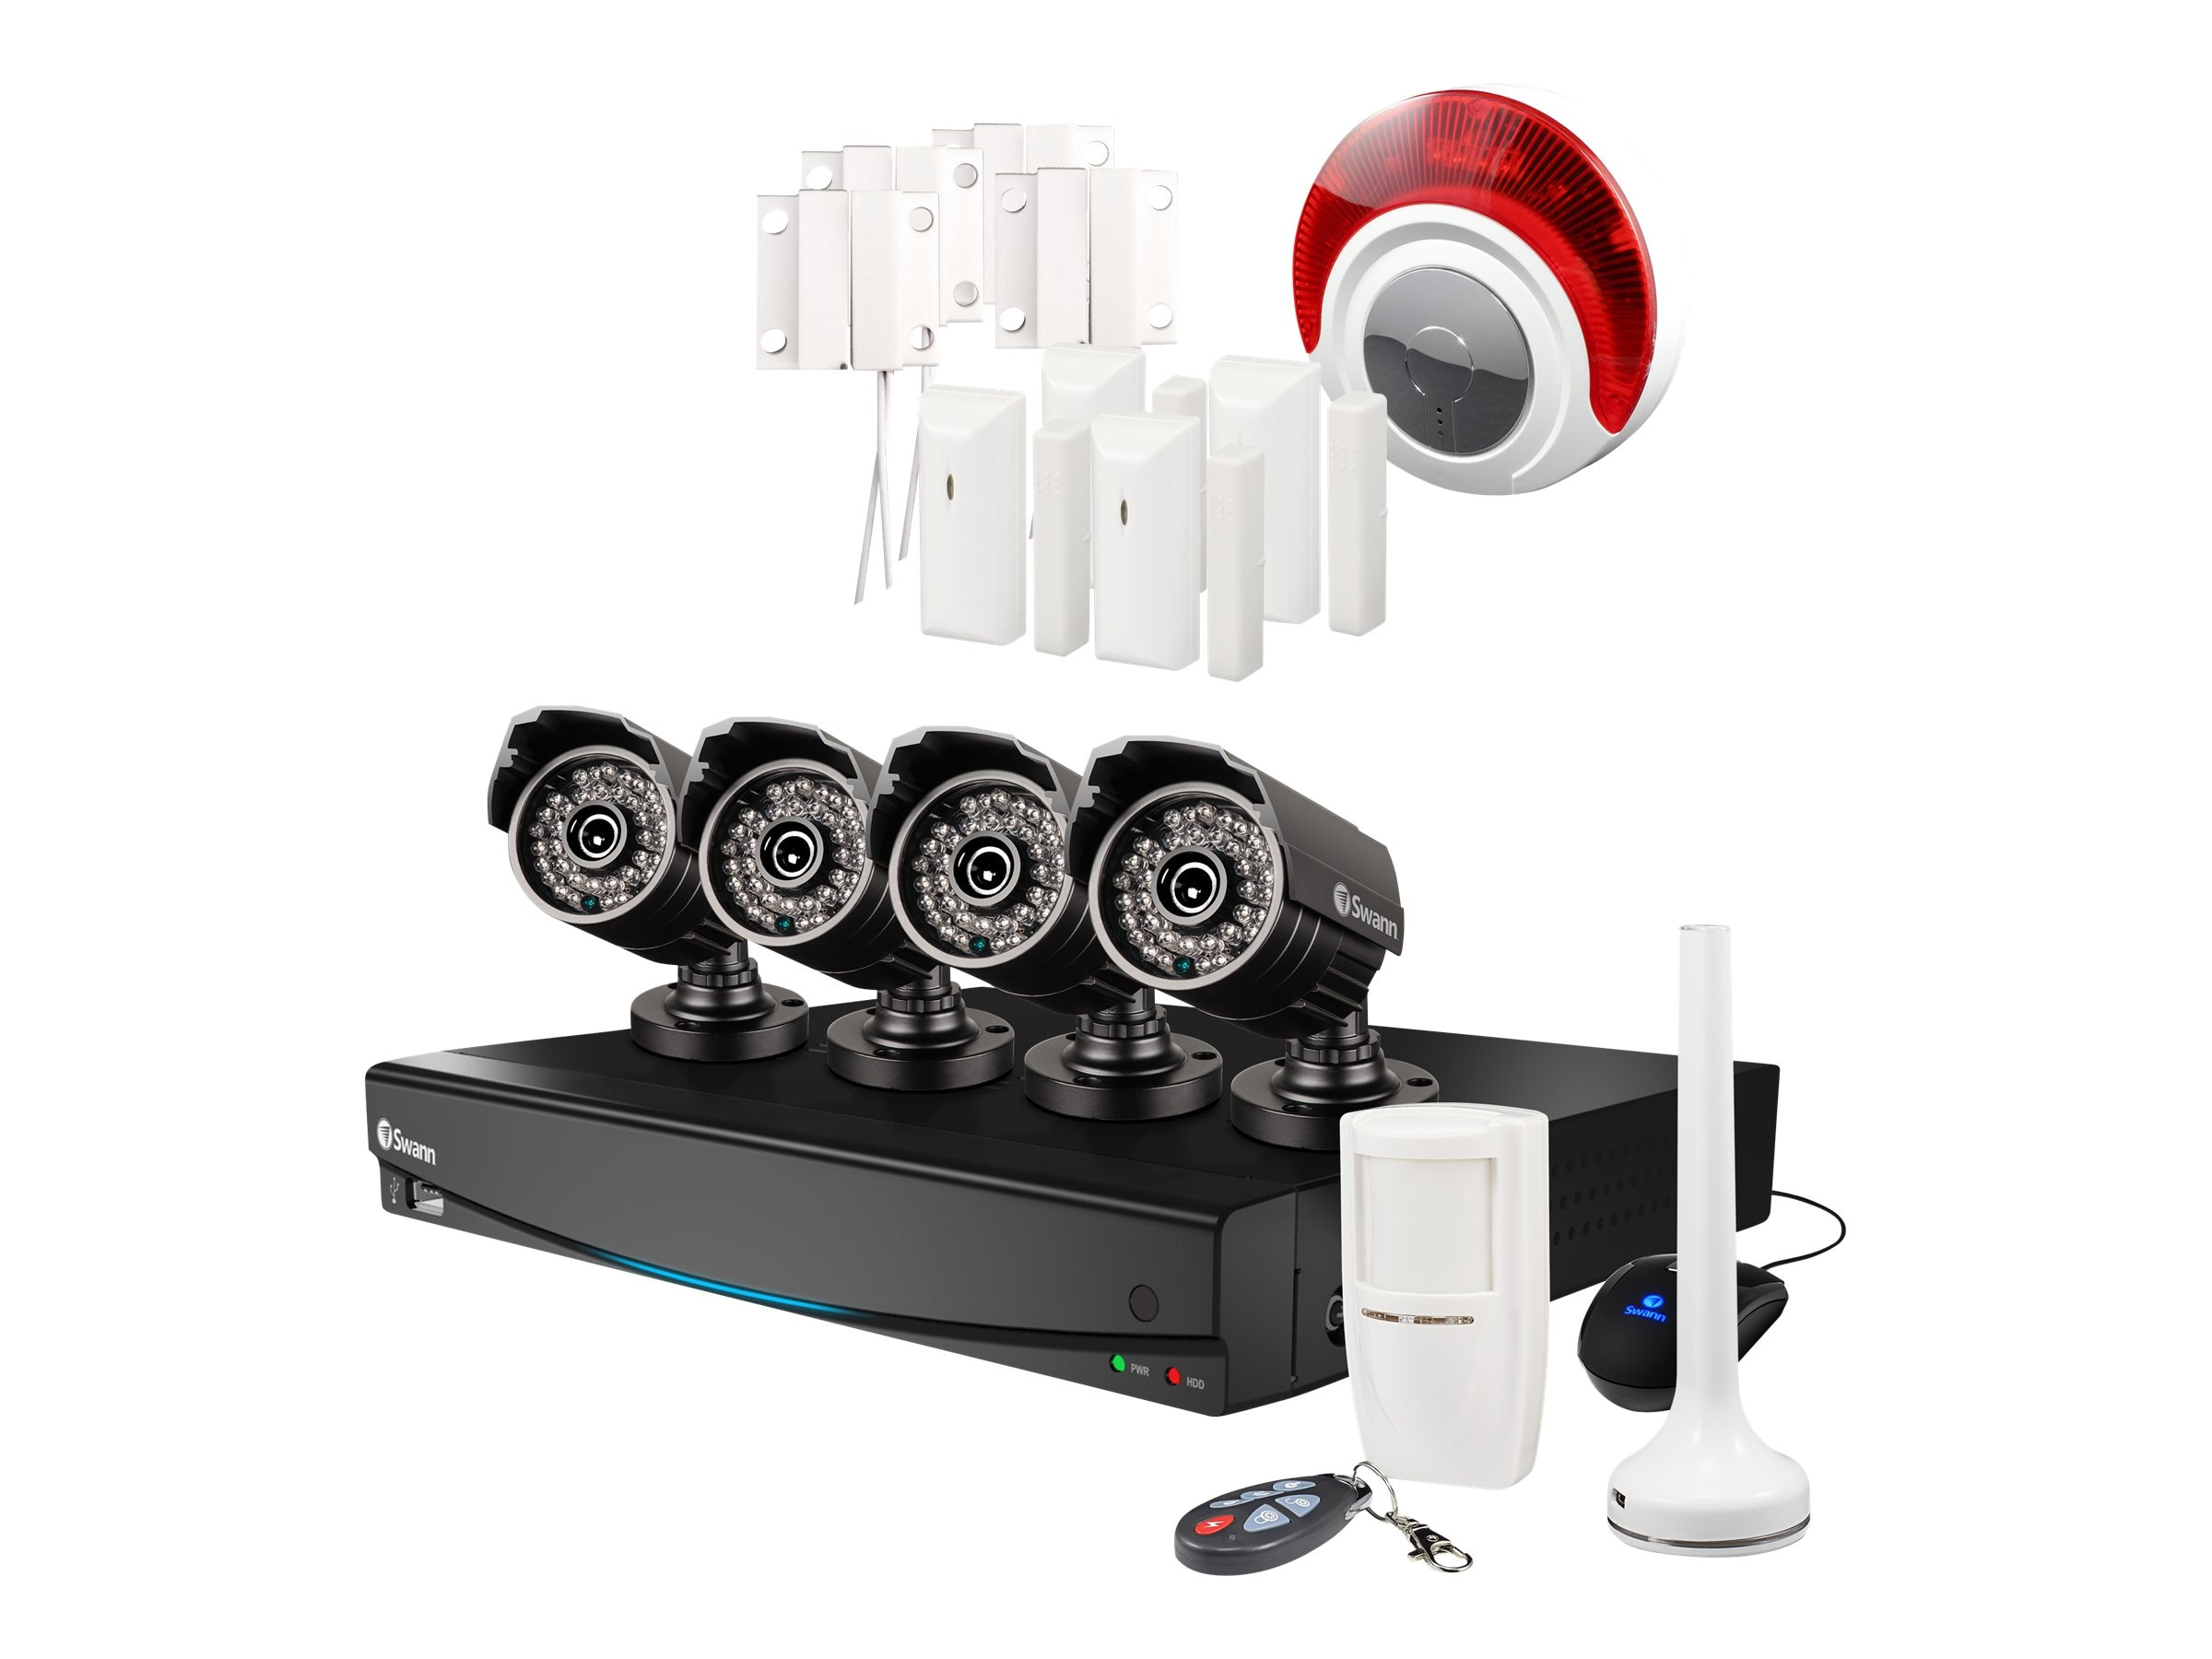 Swann 8-Channel 960H DVR with 4x 720TVL Cameras, Alarm Sensors, Siren